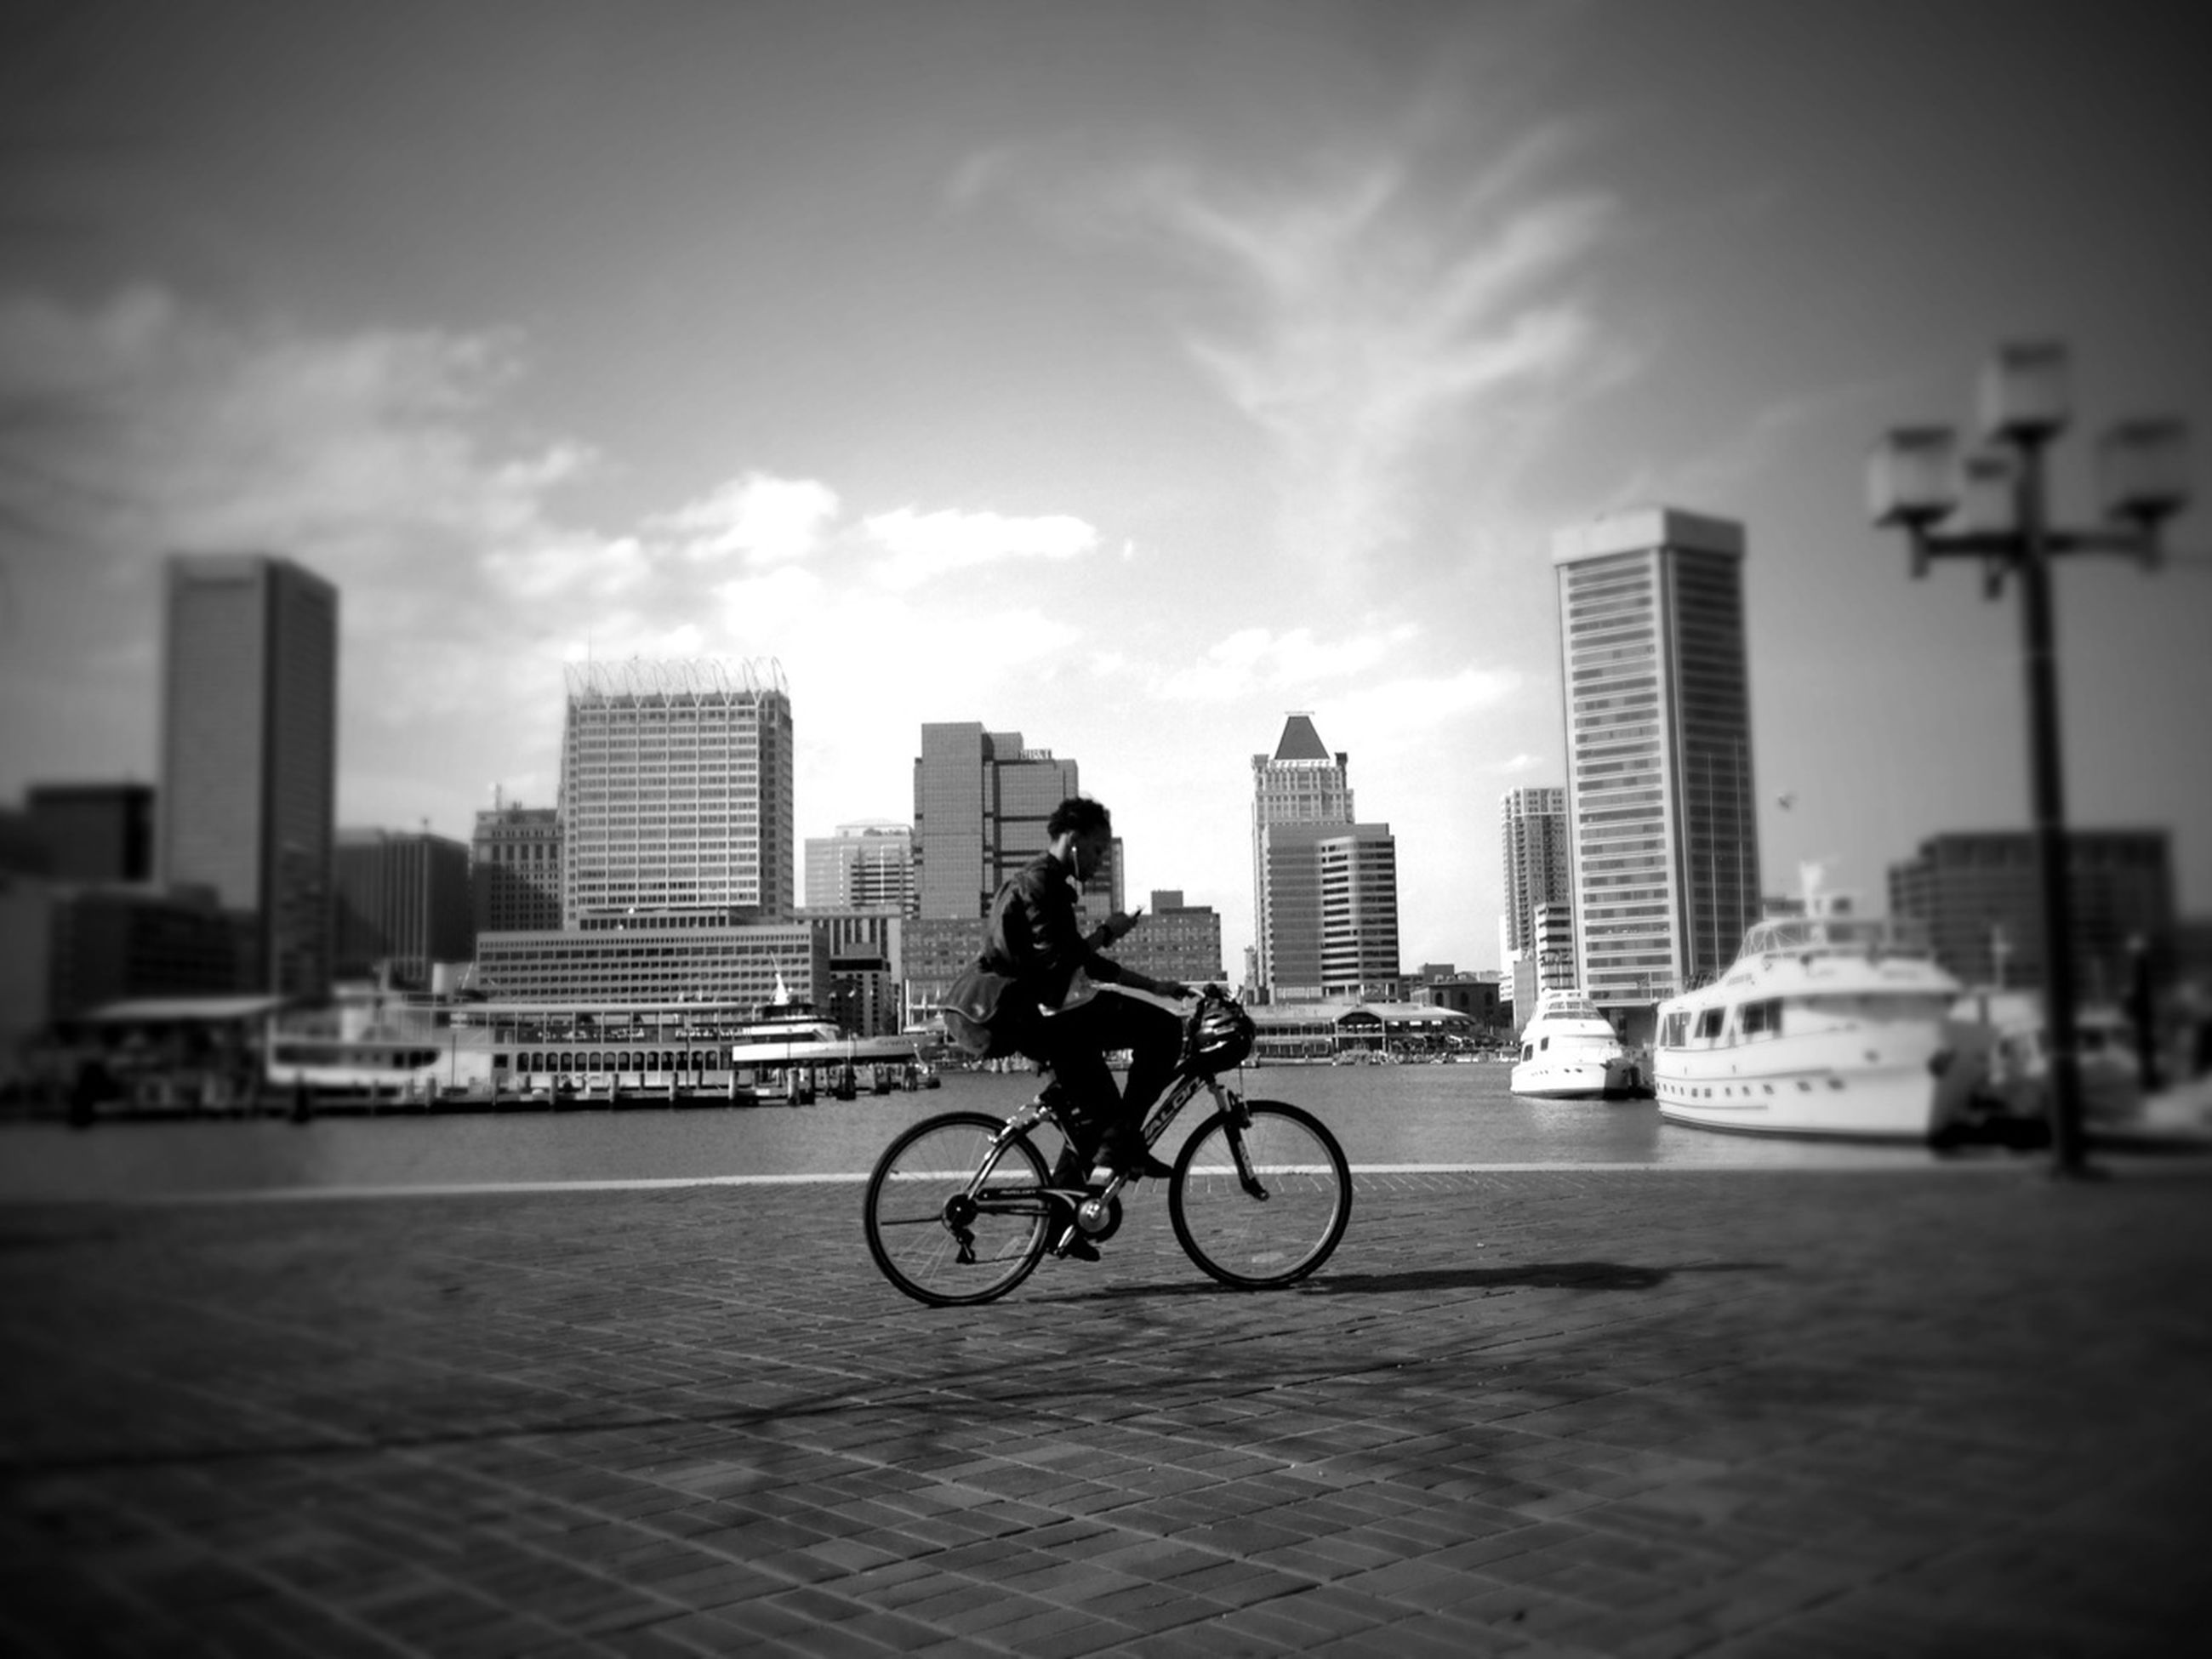 bicycle, building exterior, land vehicle, city, transportation, architecture, mode of transport, built structure, street, riding, city life, road, sky, car, full length, men, skyscraper, cycling